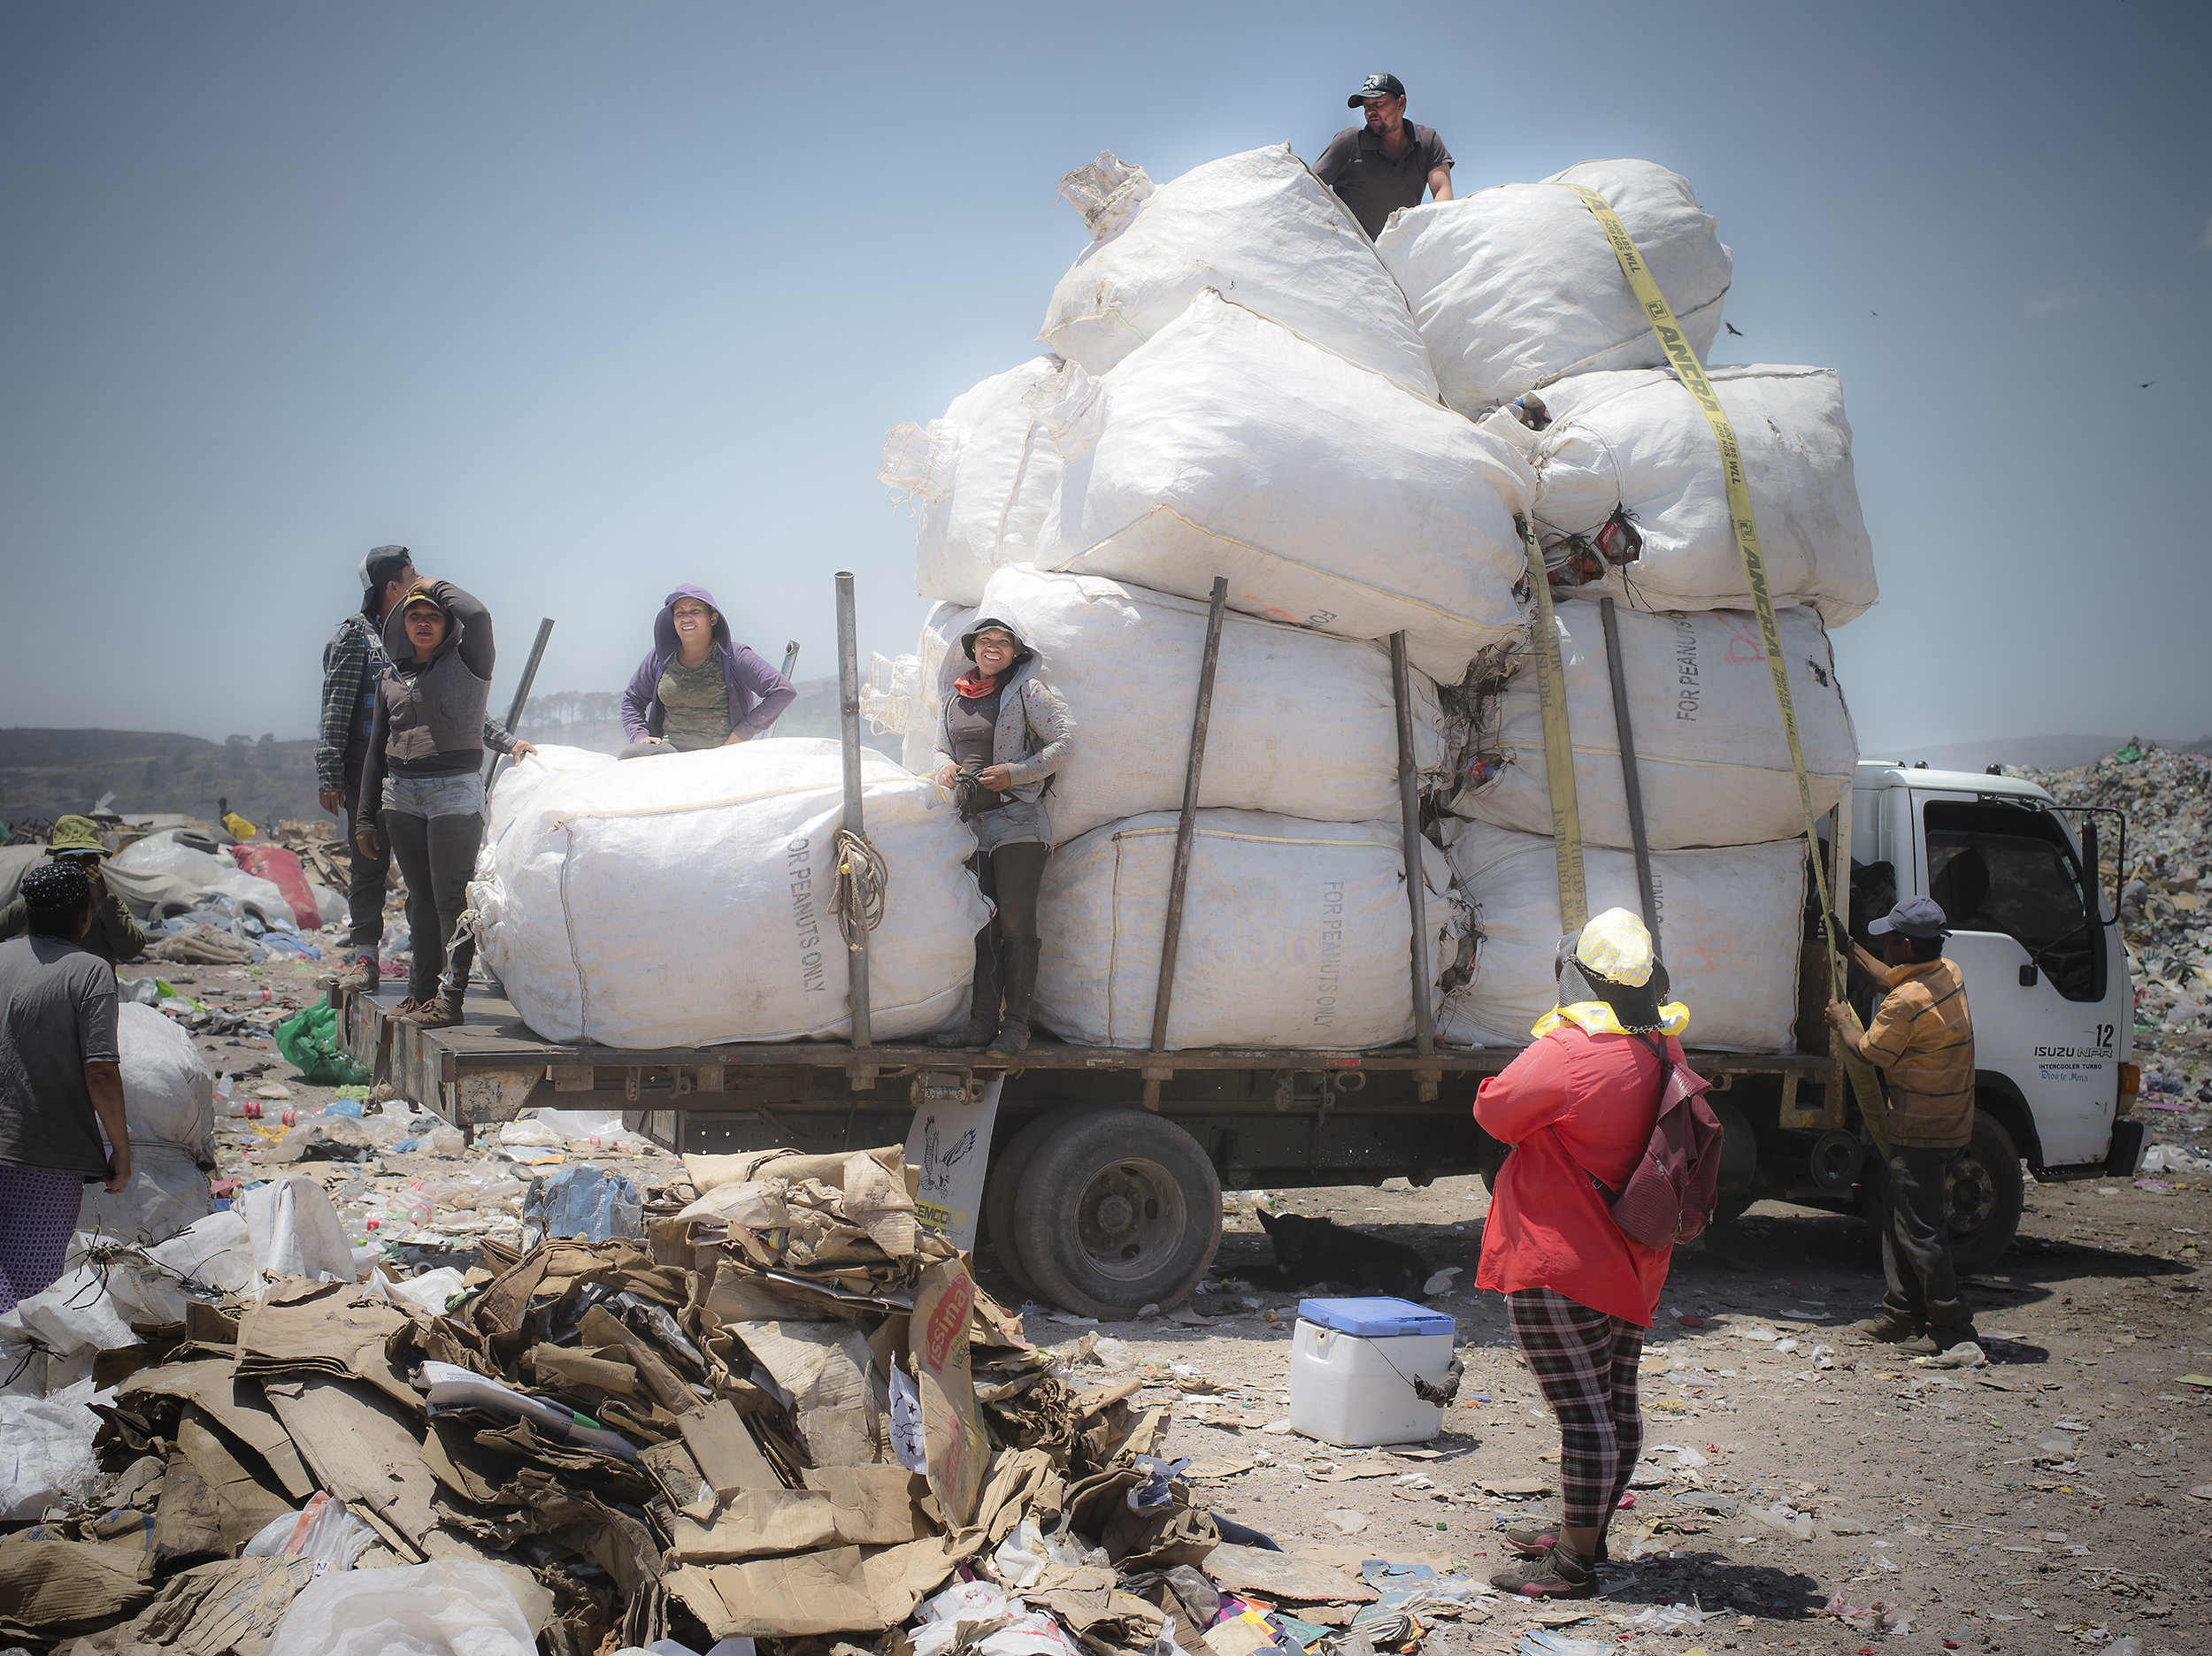 This group works for the Mara Salvatrucha and this bundle had reached it's max. The gang hangs out inside a large room with couches and scales. They do not recycle, they only wait to buy the materials as it's collected around them.